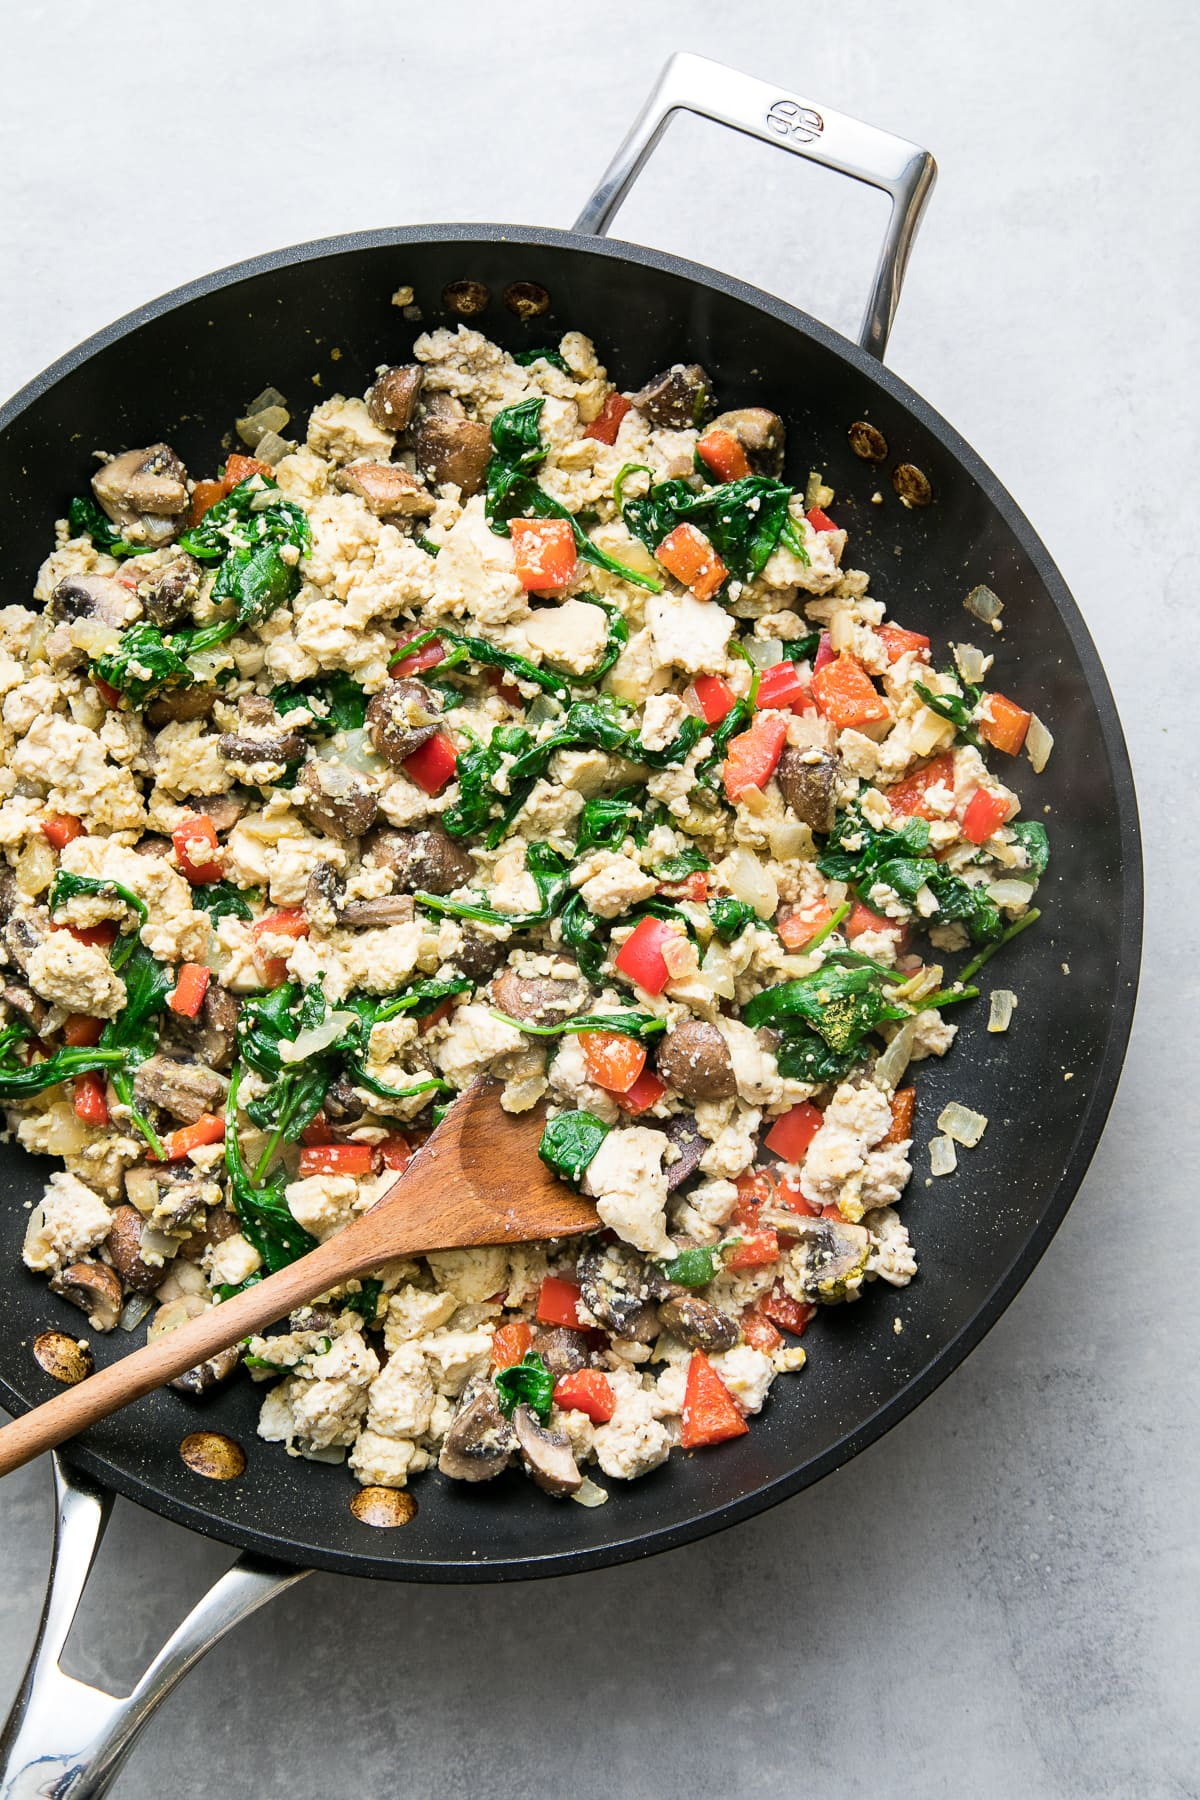 top down view of veggie filled tofu scramble in a skillet with wooden spoon.